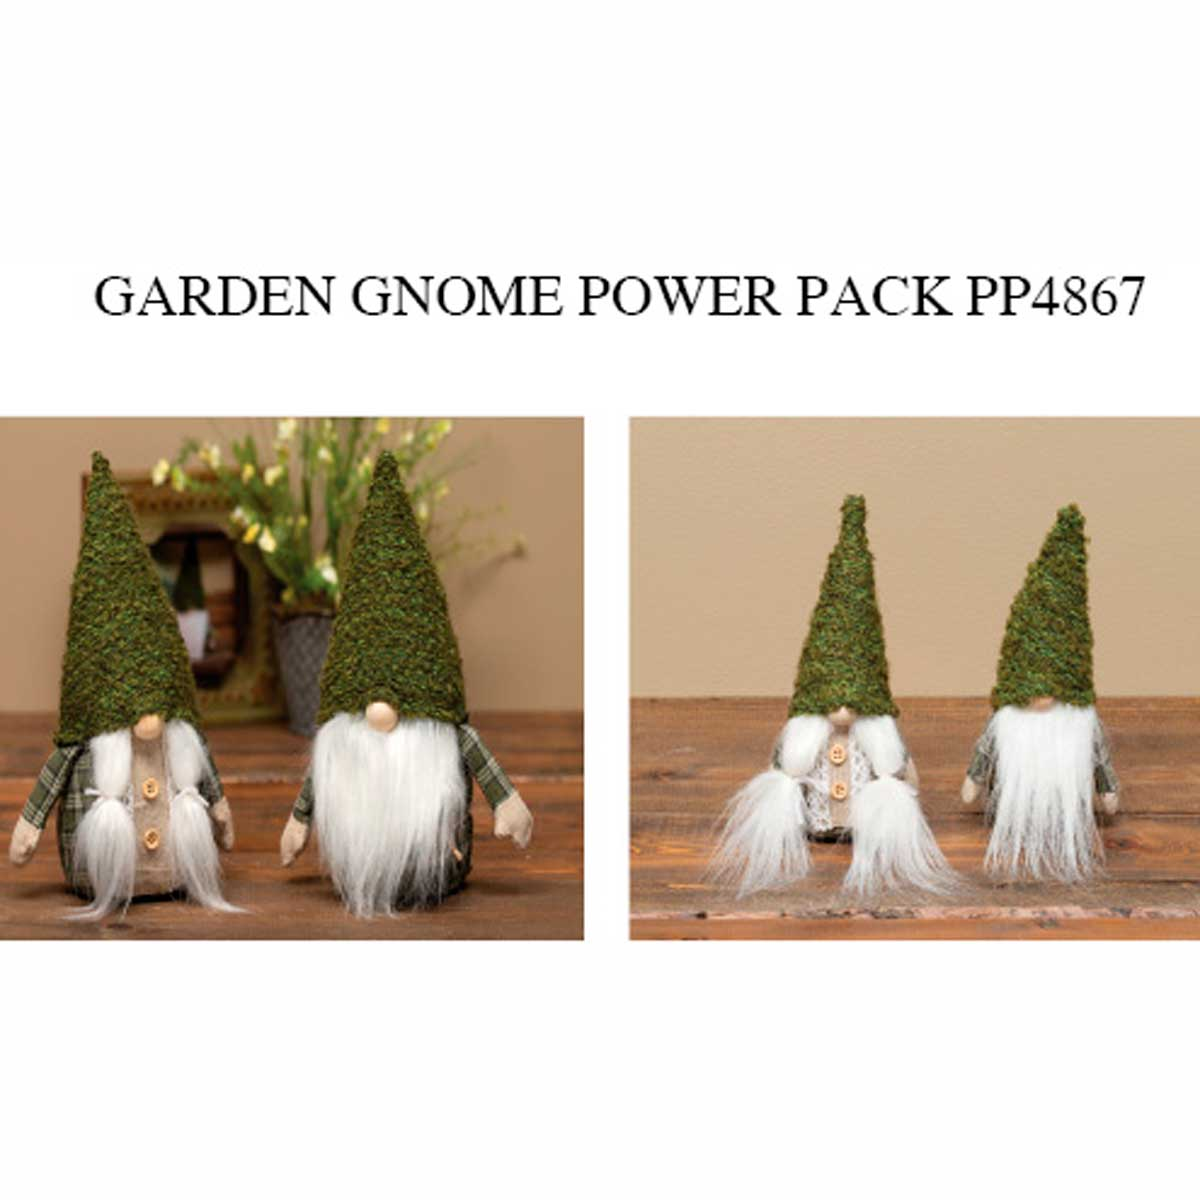 Garden Gnome Power Pack 12 units PP4867